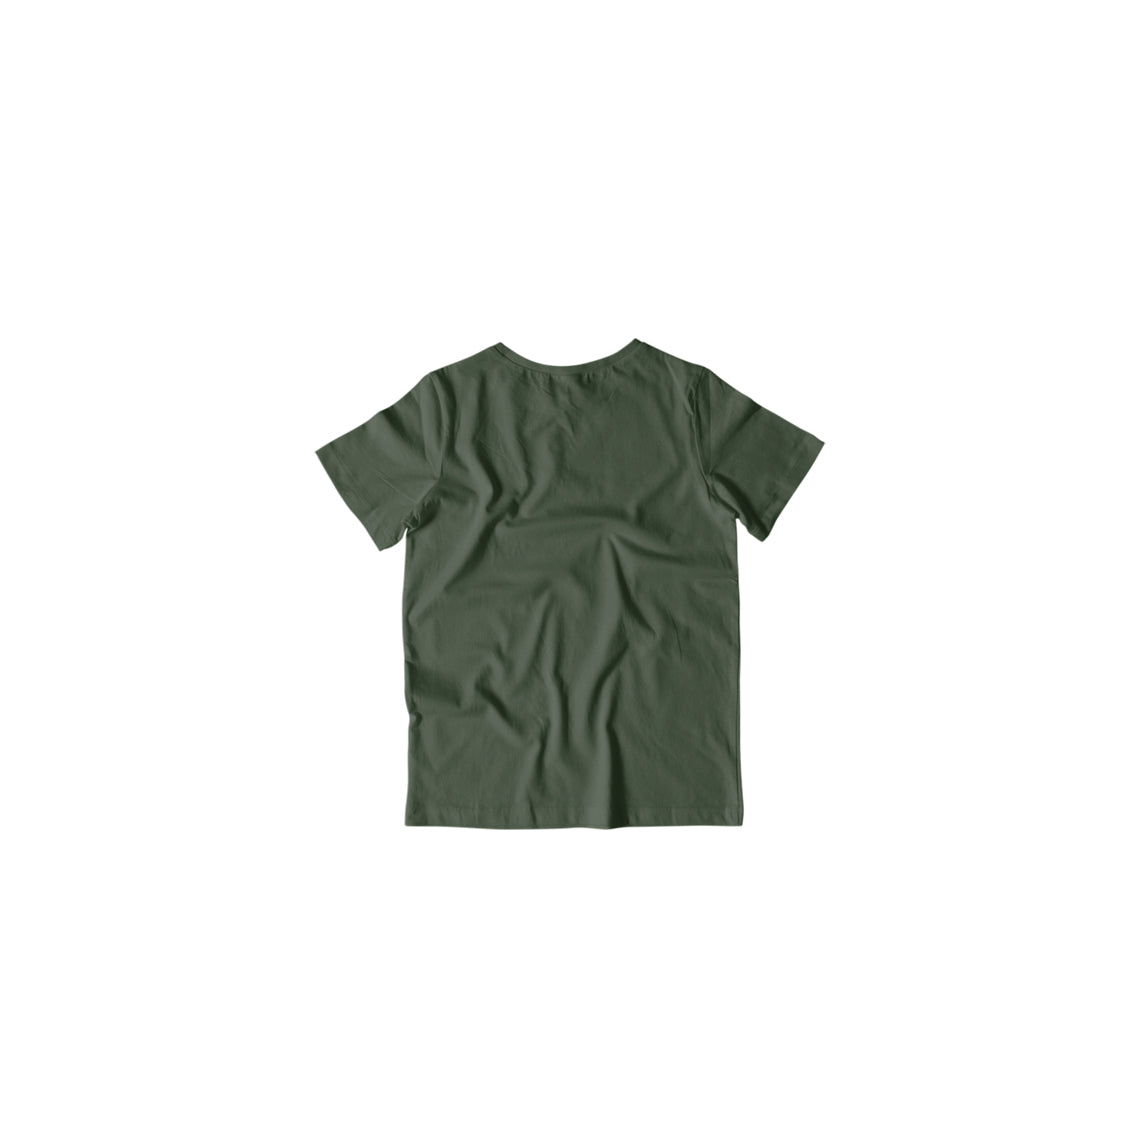 Toddler's Basics - Olive Green Half Sleeves Round Neck T-shirt